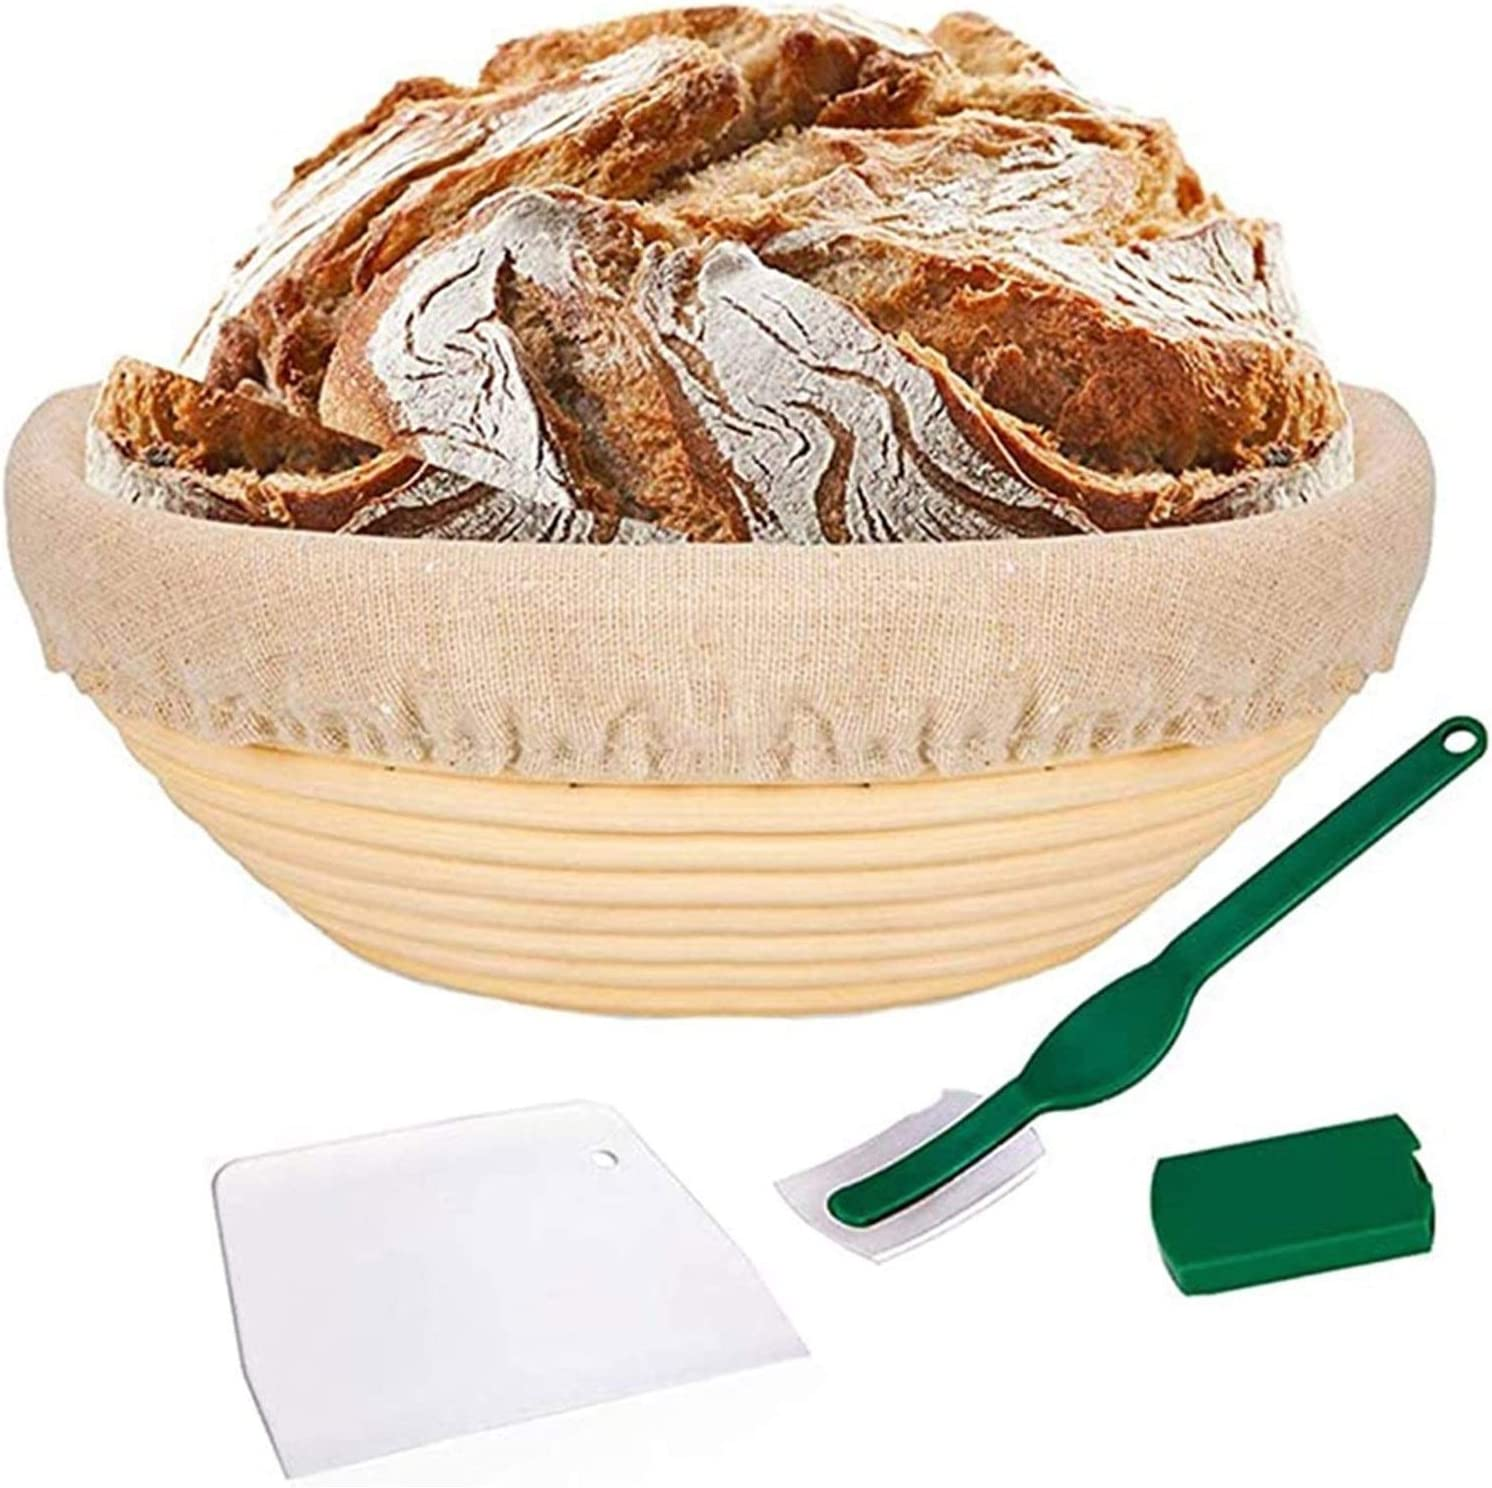 3°Amy Round Banneton Proofing Basket Inch At the price of surprise Ba Phoenix Mall Bread 9